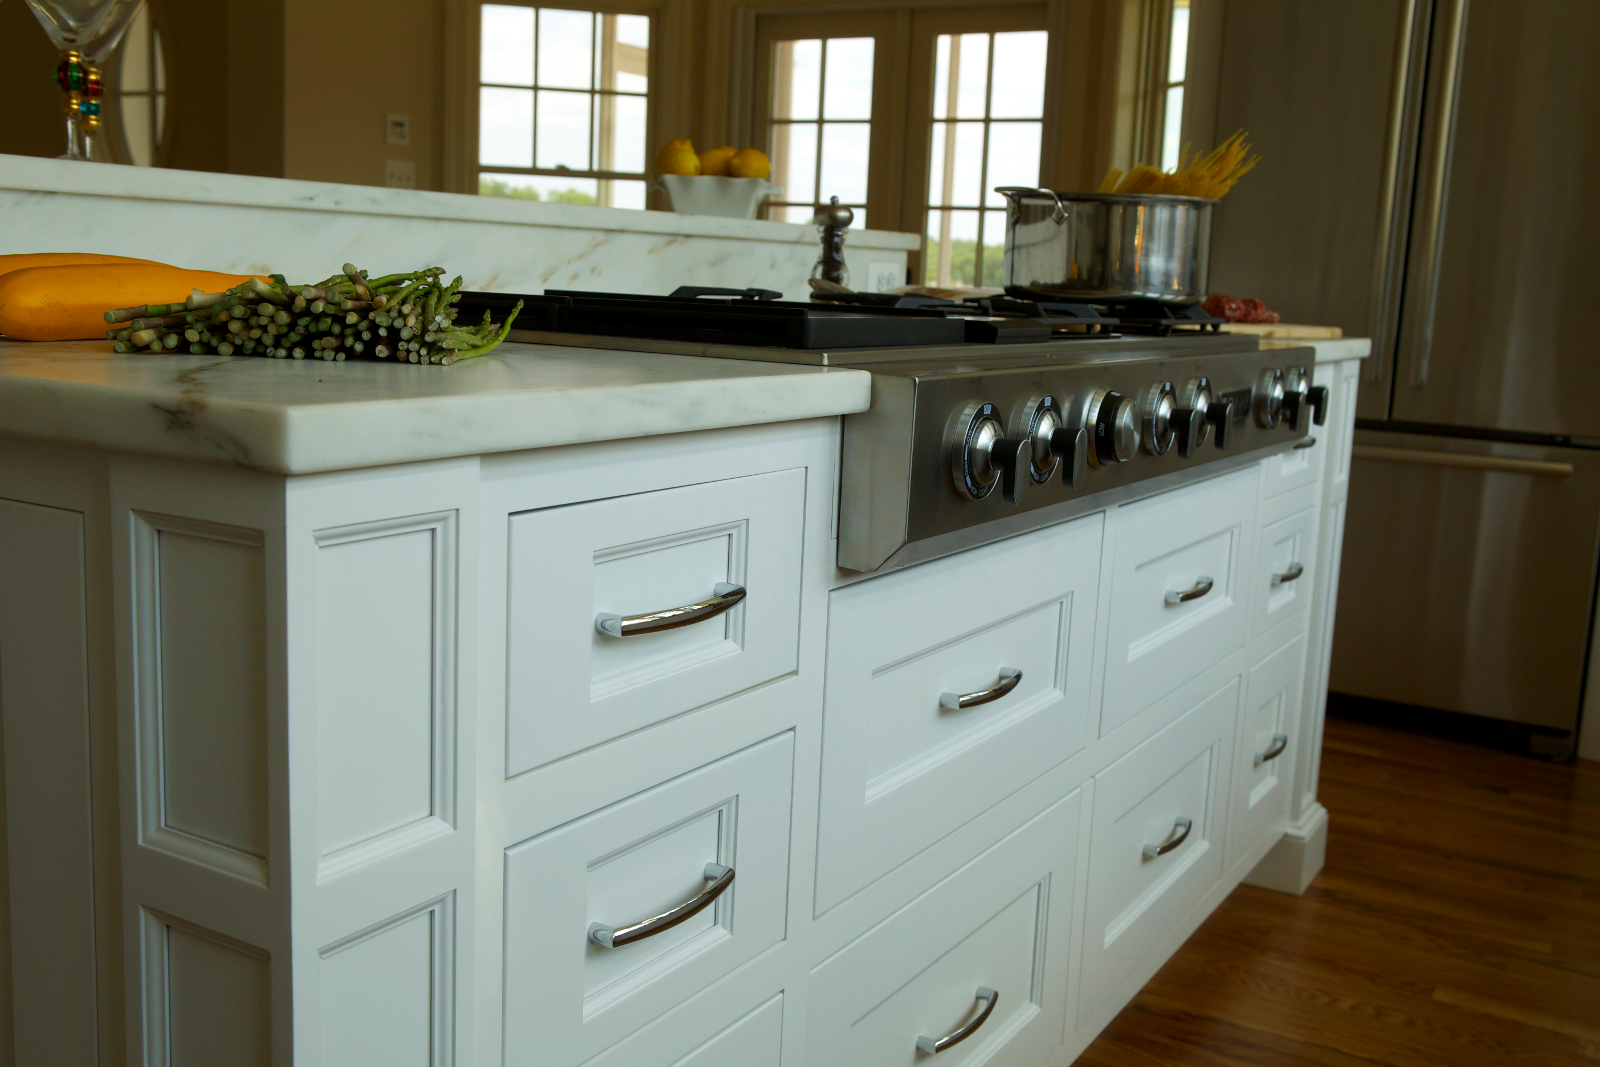 Pilaster Column Corners And Inset Doors And Drawers Create A Smart Profile That Only Adds To The Simple Desi Kitchen Island Bar Kitchen Cabinets Trendy Kitchen